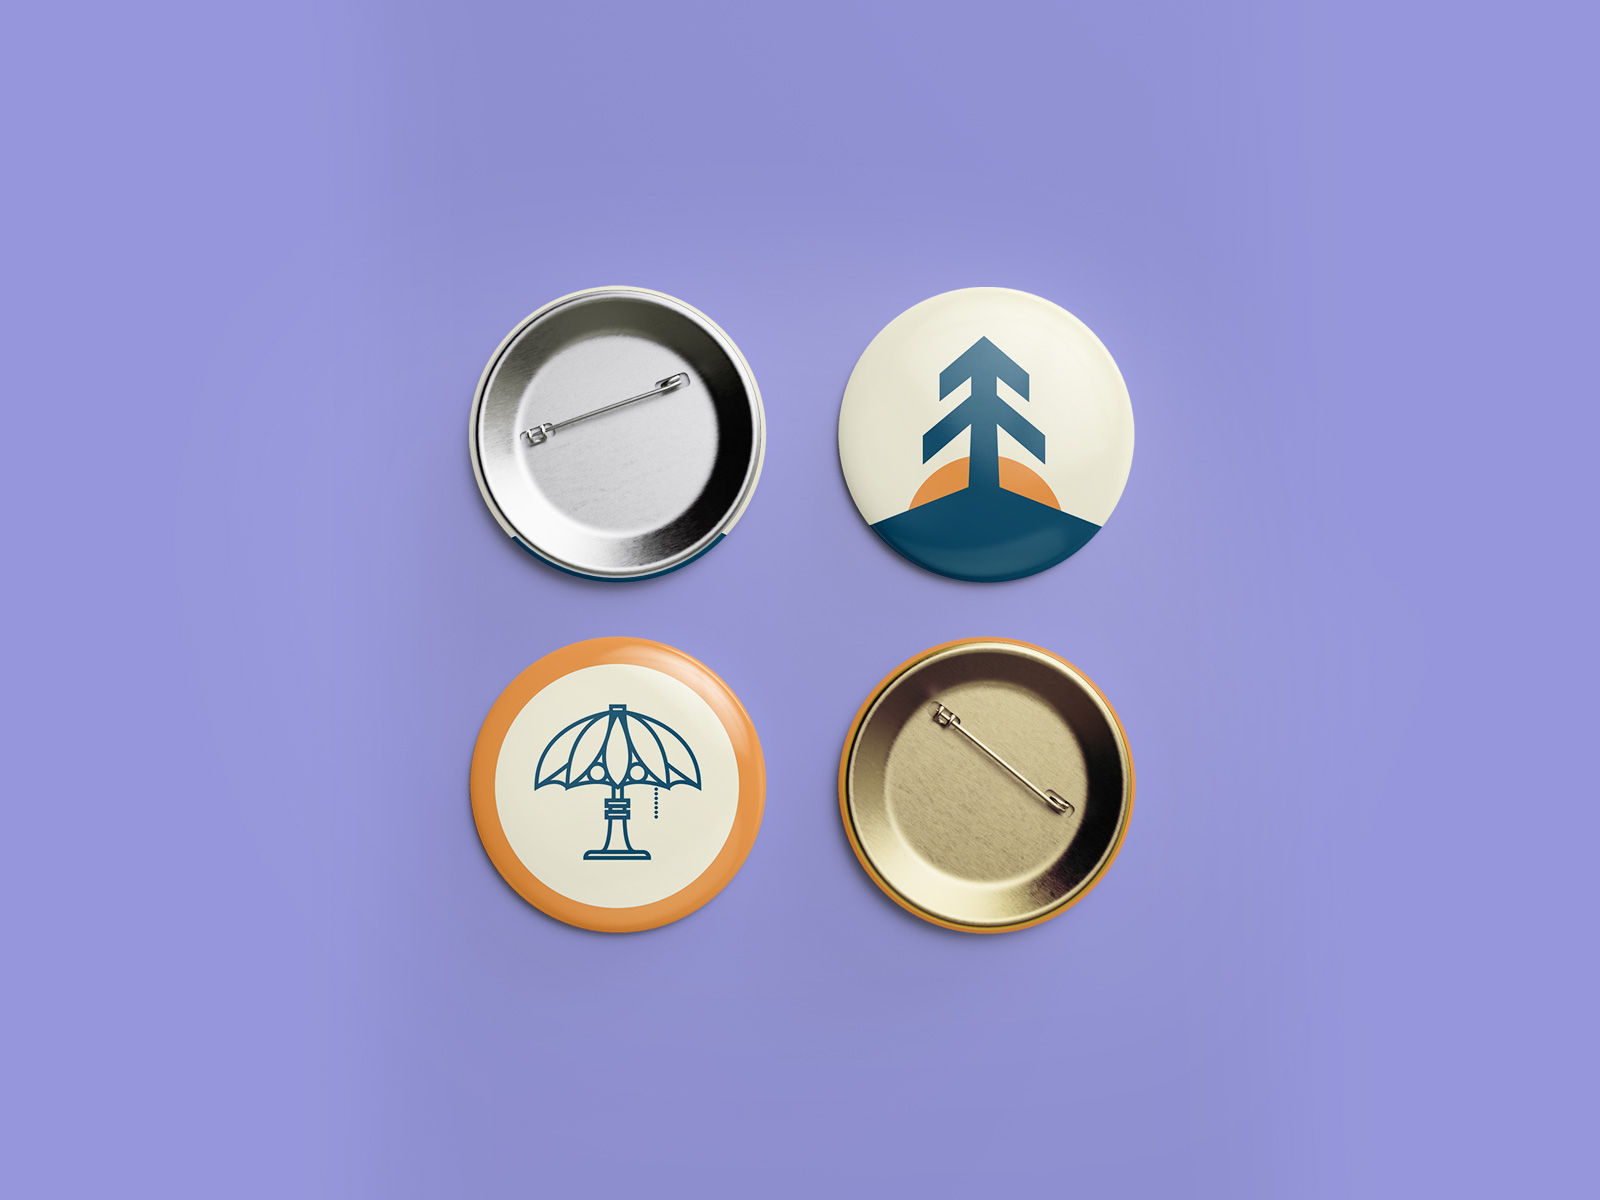 collectable pin design for High Ground Brand Identity Design Project